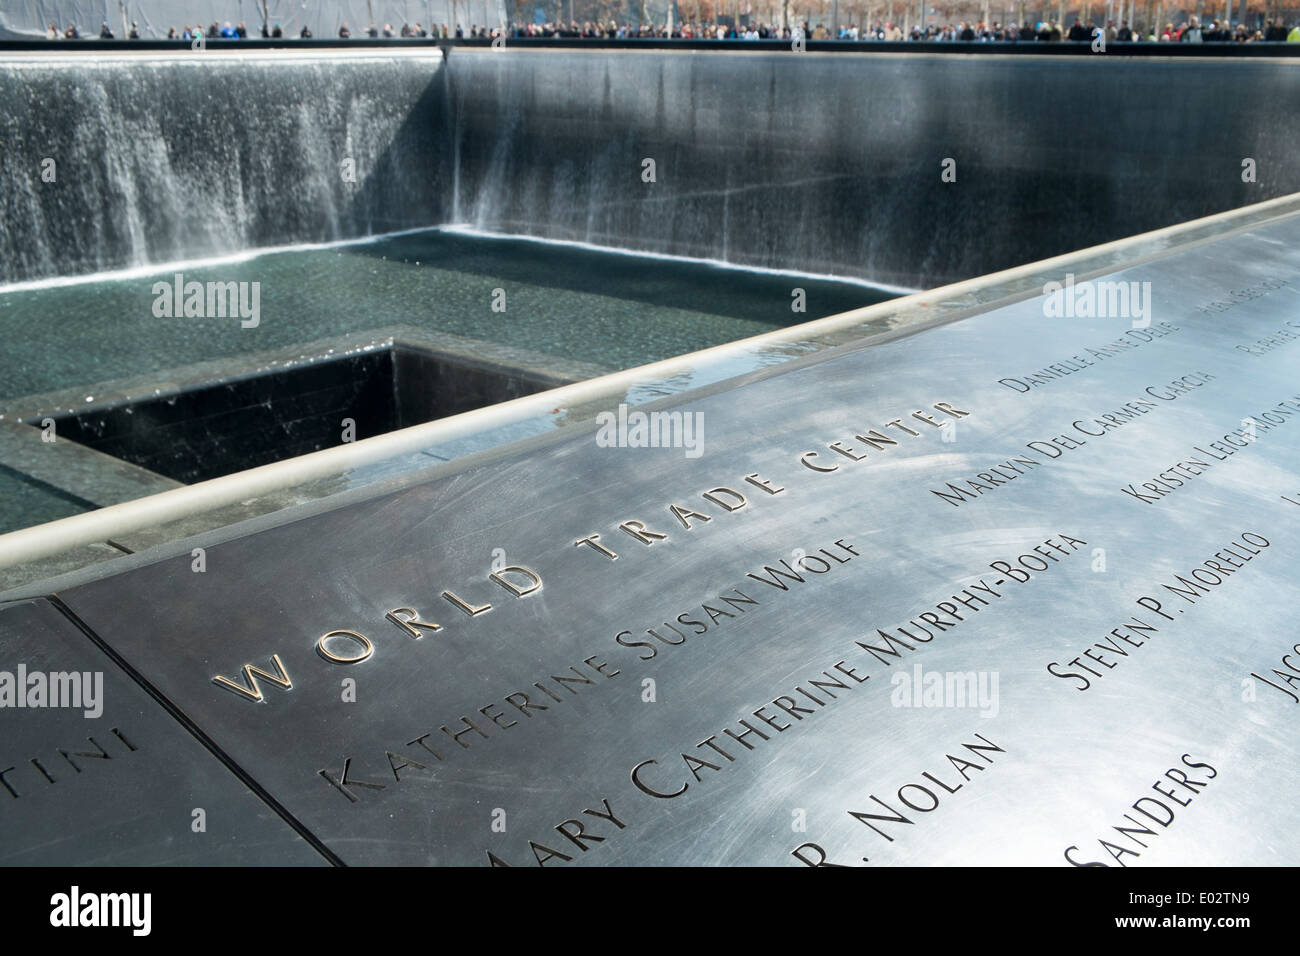 9/11 ground zero memorial site for the world trade towers, New York, USA - Stock Image